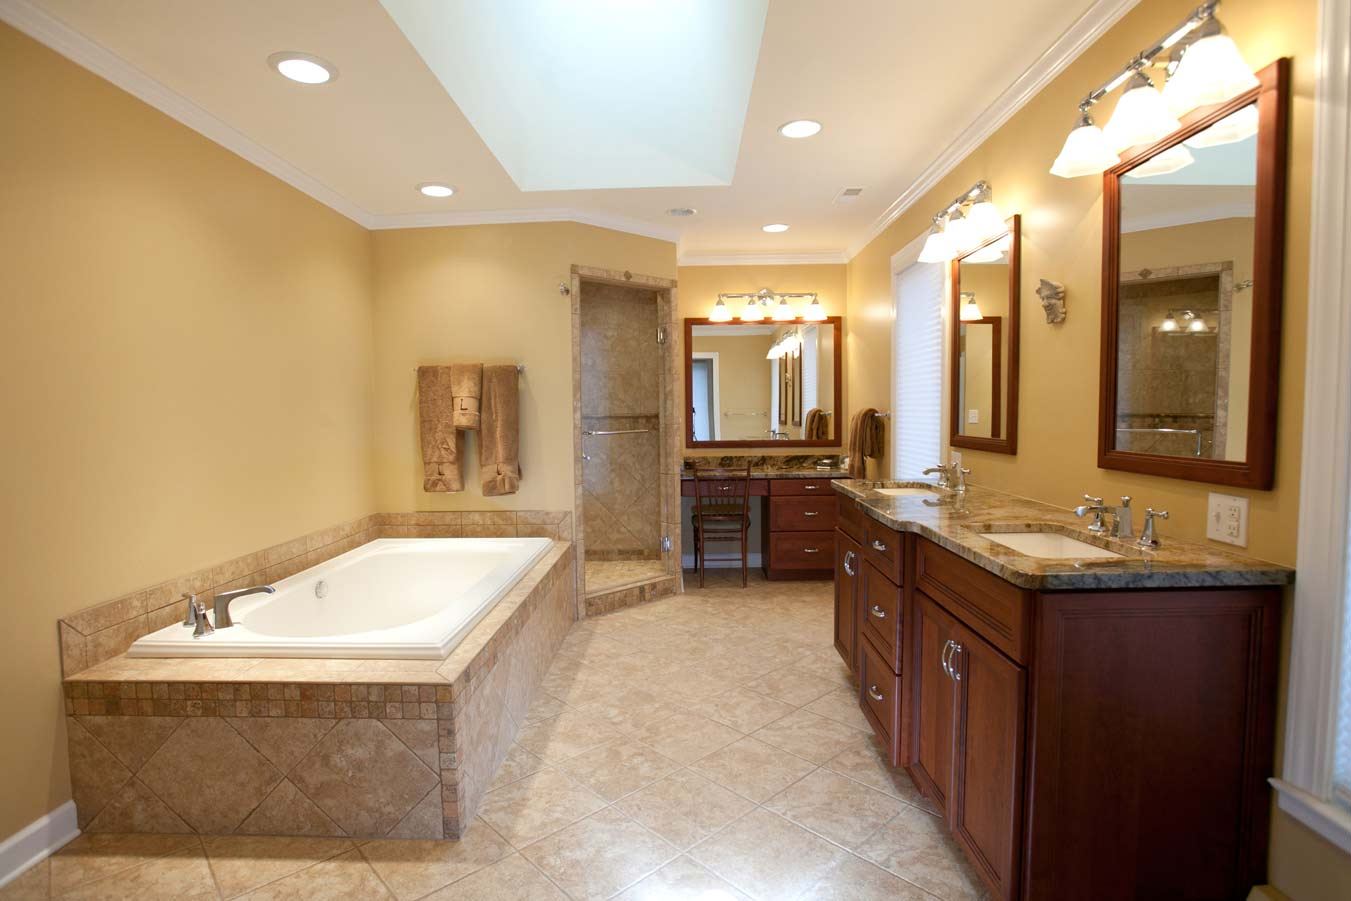 ideas bathroom remodel 25 best bathroom remodeling ideas and inspiration the wow style 3363